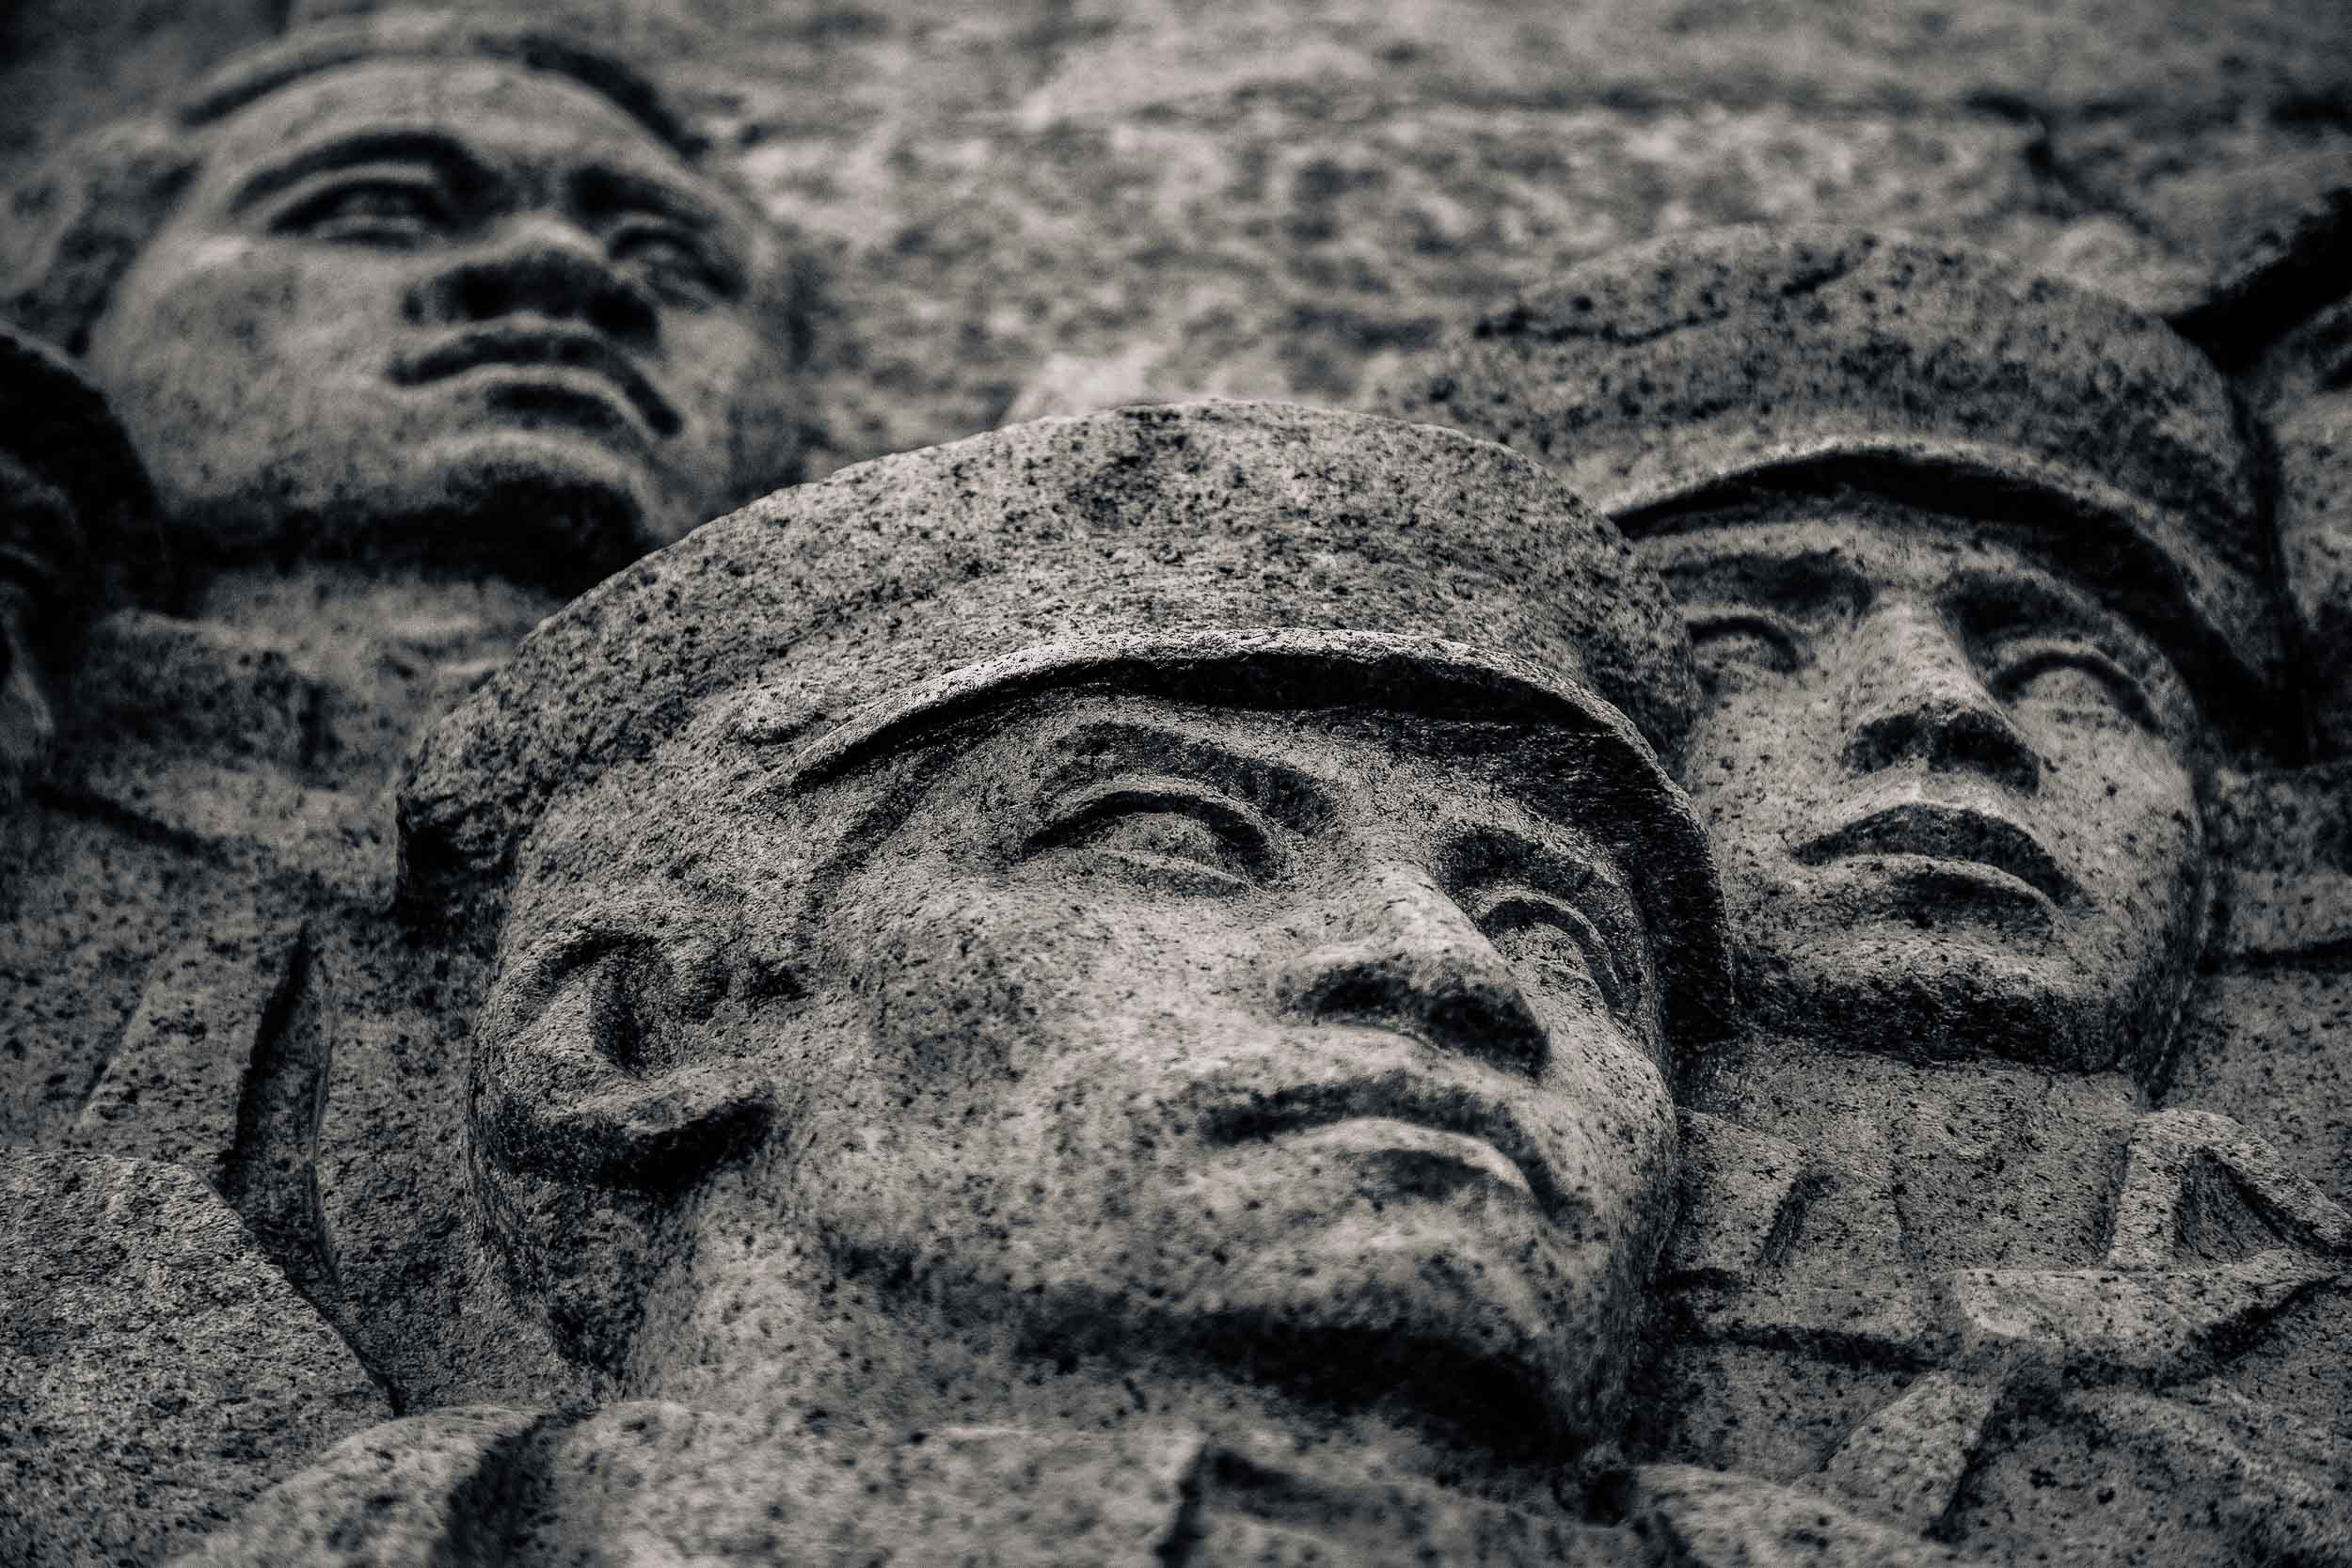 Soldiers faces, carved into stone along    The Bund    in    Shanghai   , China. The Bund is one of many great opportunities photographing China opens to you.